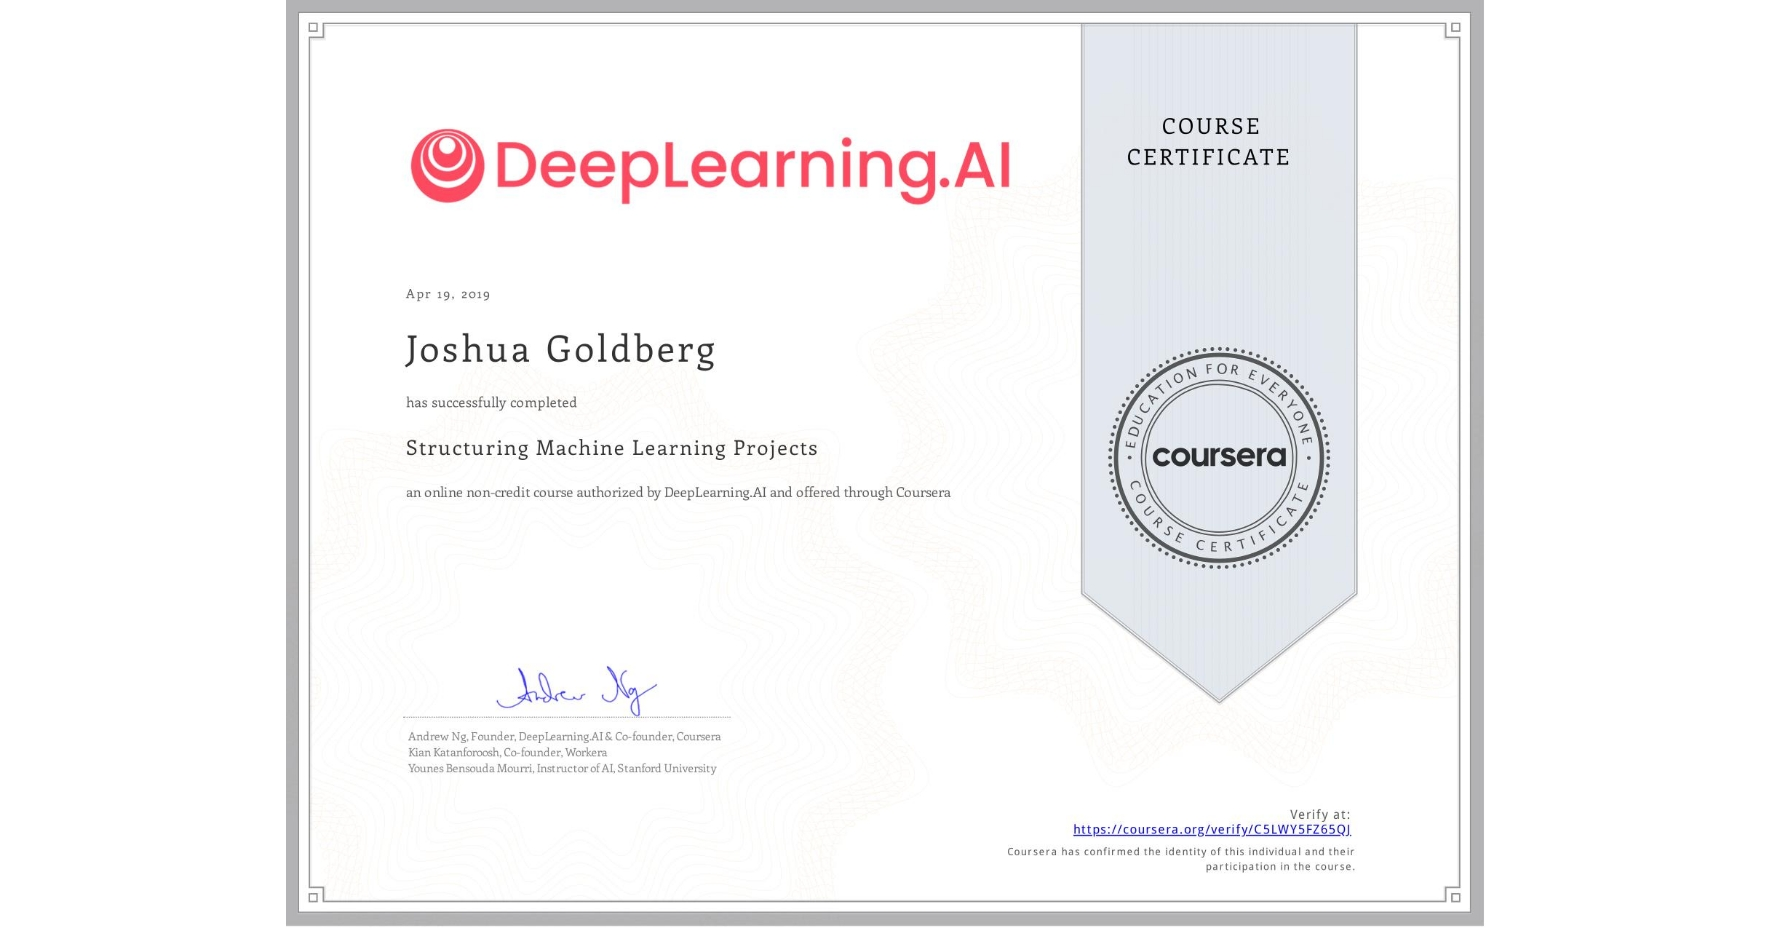 View certificate for Joshua Goldberg, Structuring Machine Learning Projects, an online non-credit course authorized by DeepLearning.AI and offered through Coursera